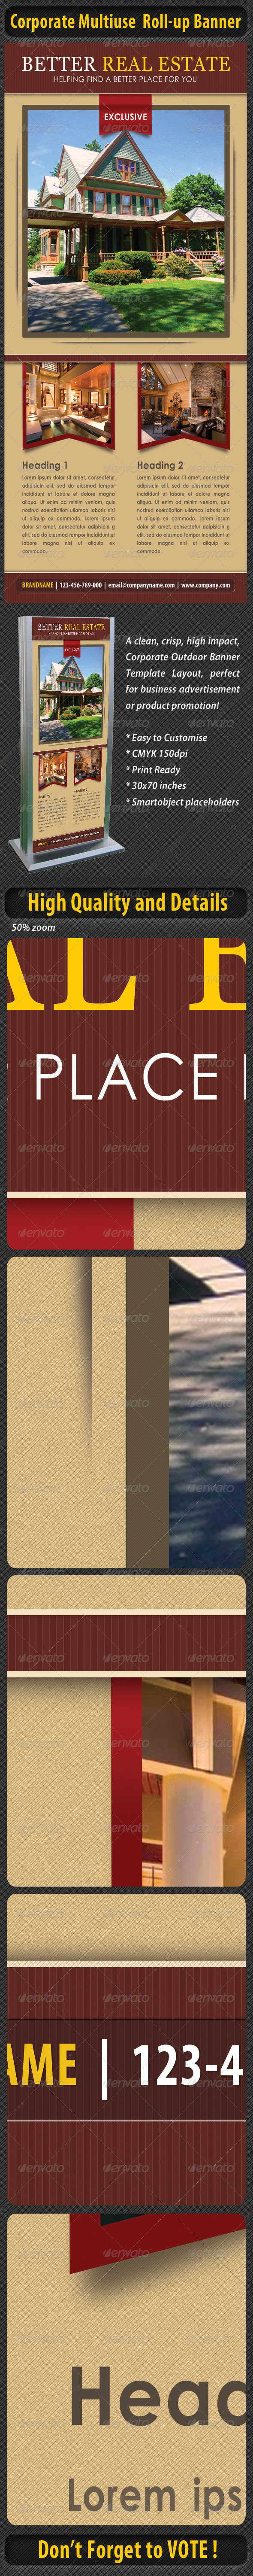 GraphicRiver Corporate Multiuse Roll-up Banner 4441957